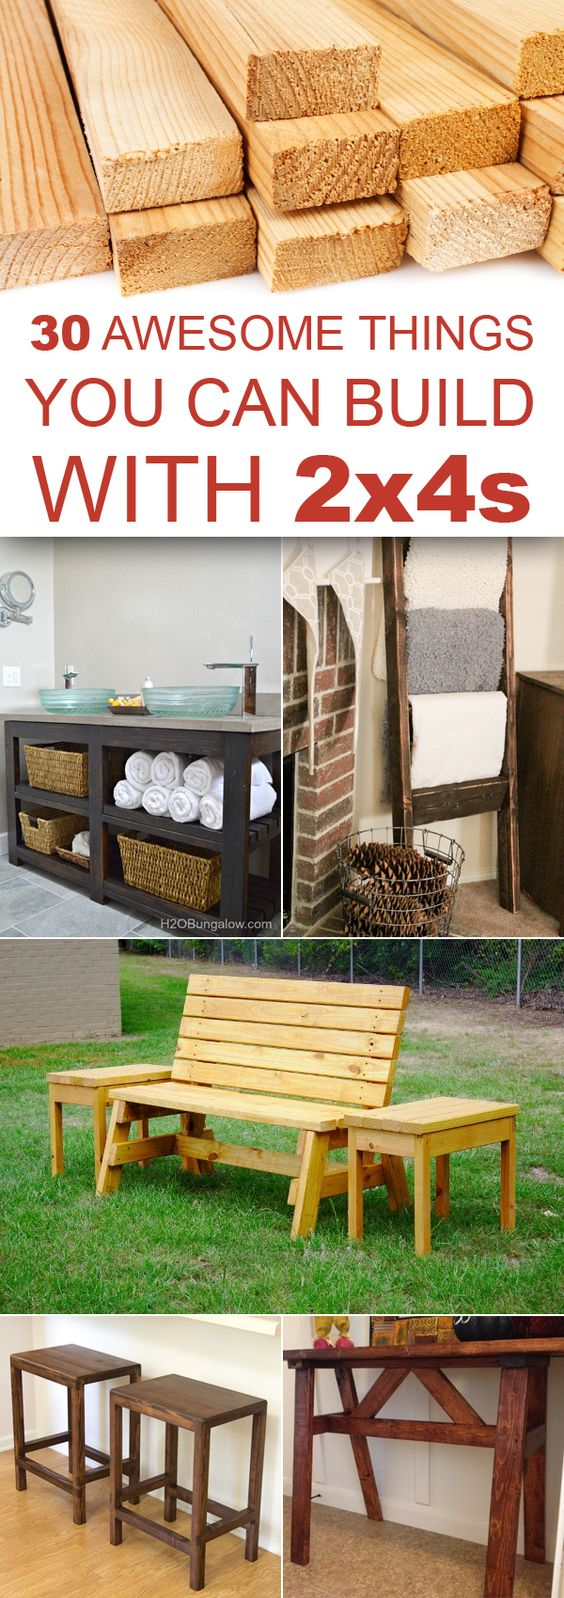 Innovative  Projects On Pinterest  Easy Woodworking Ideas Woodworking Projects